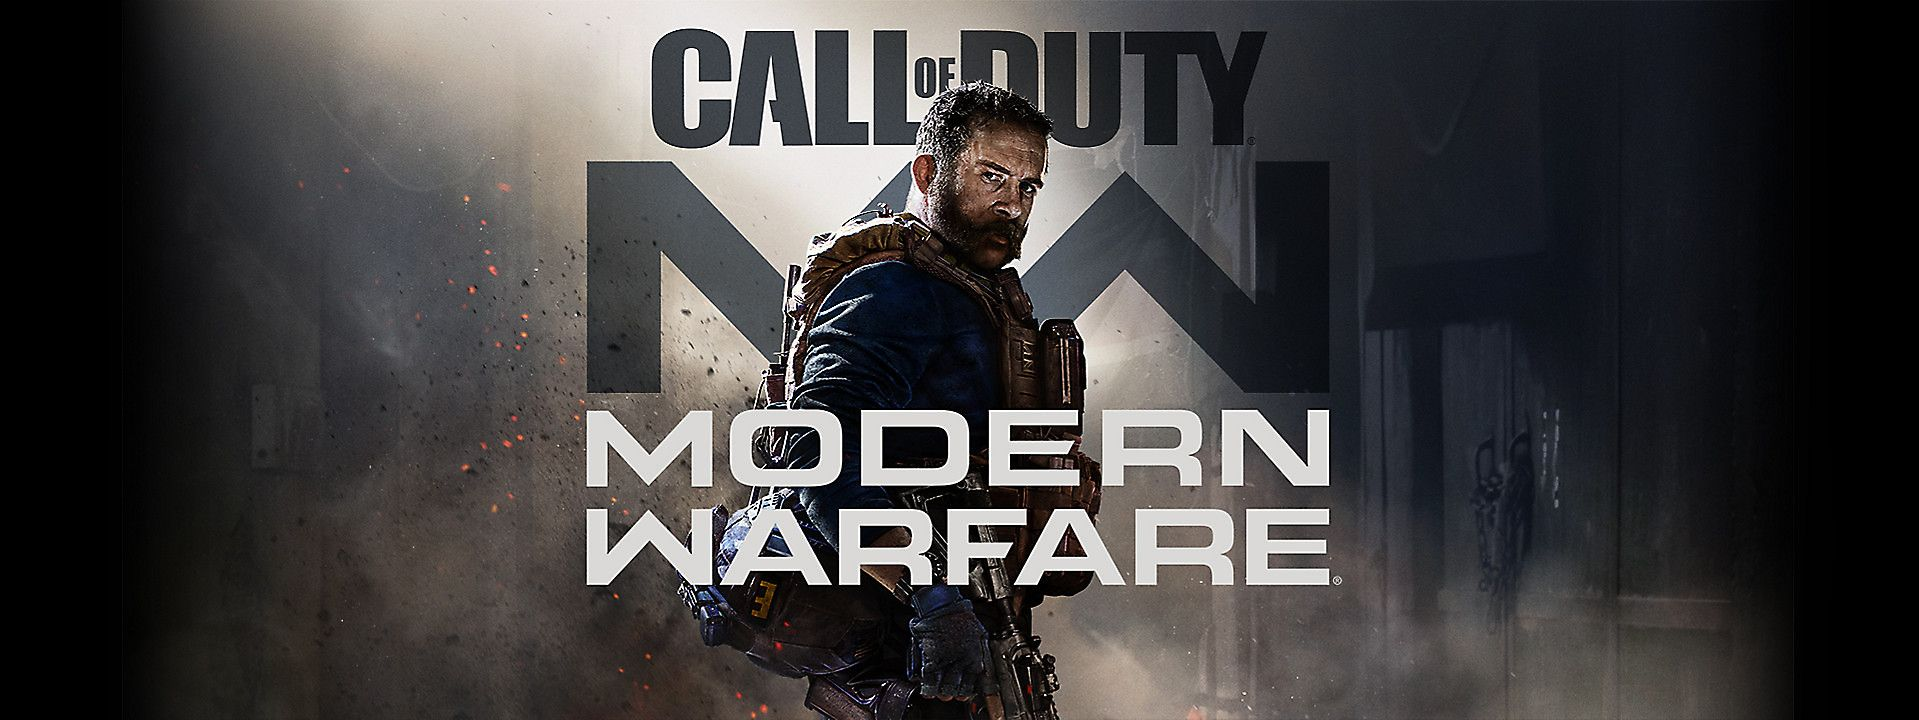 call-of-duty-modern-warfare-donates-au-wildfire.jpg